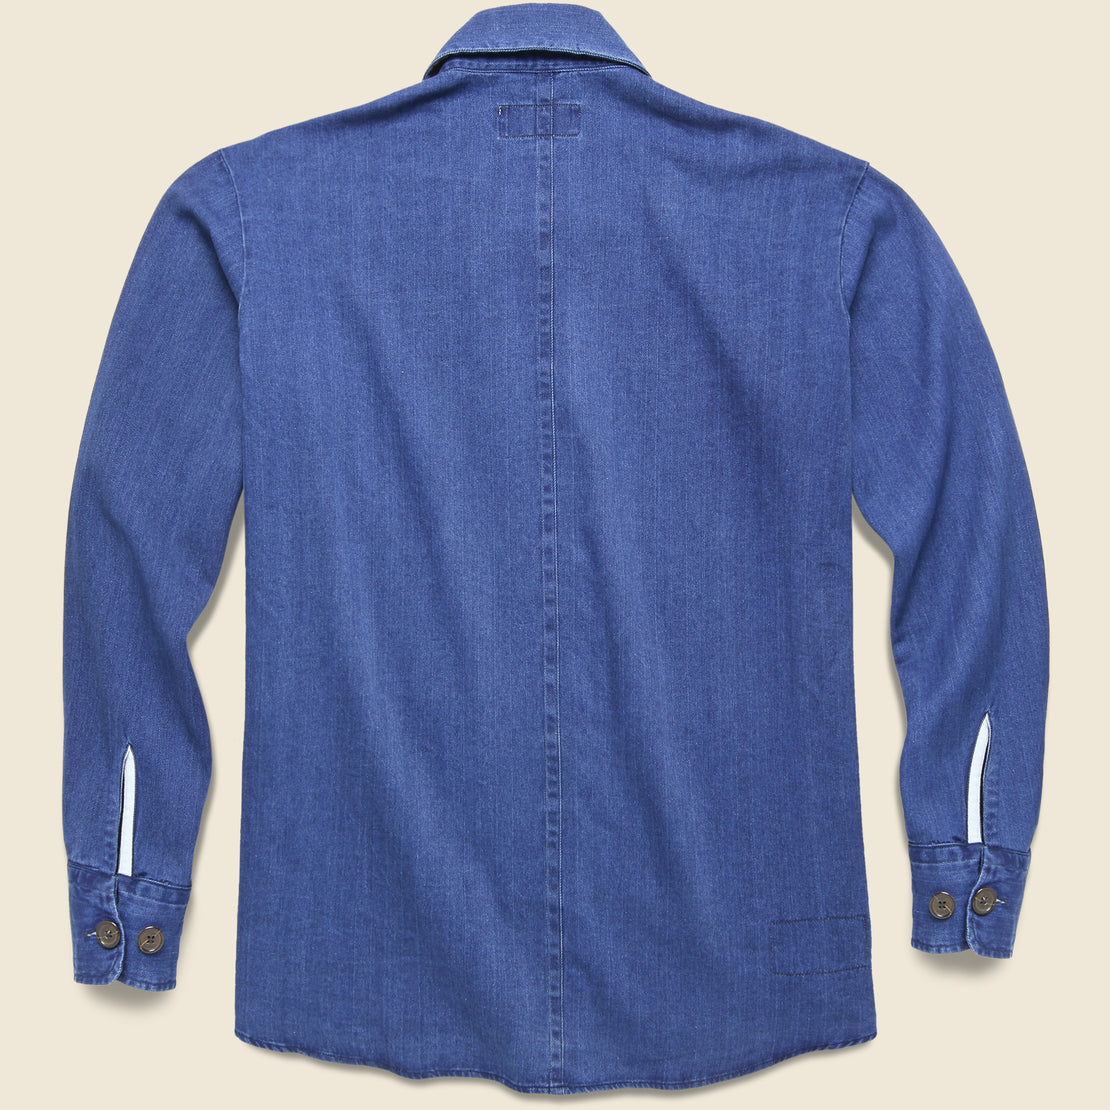 Herringbone Denim Travail Shirt Jacket - Washed Indigo